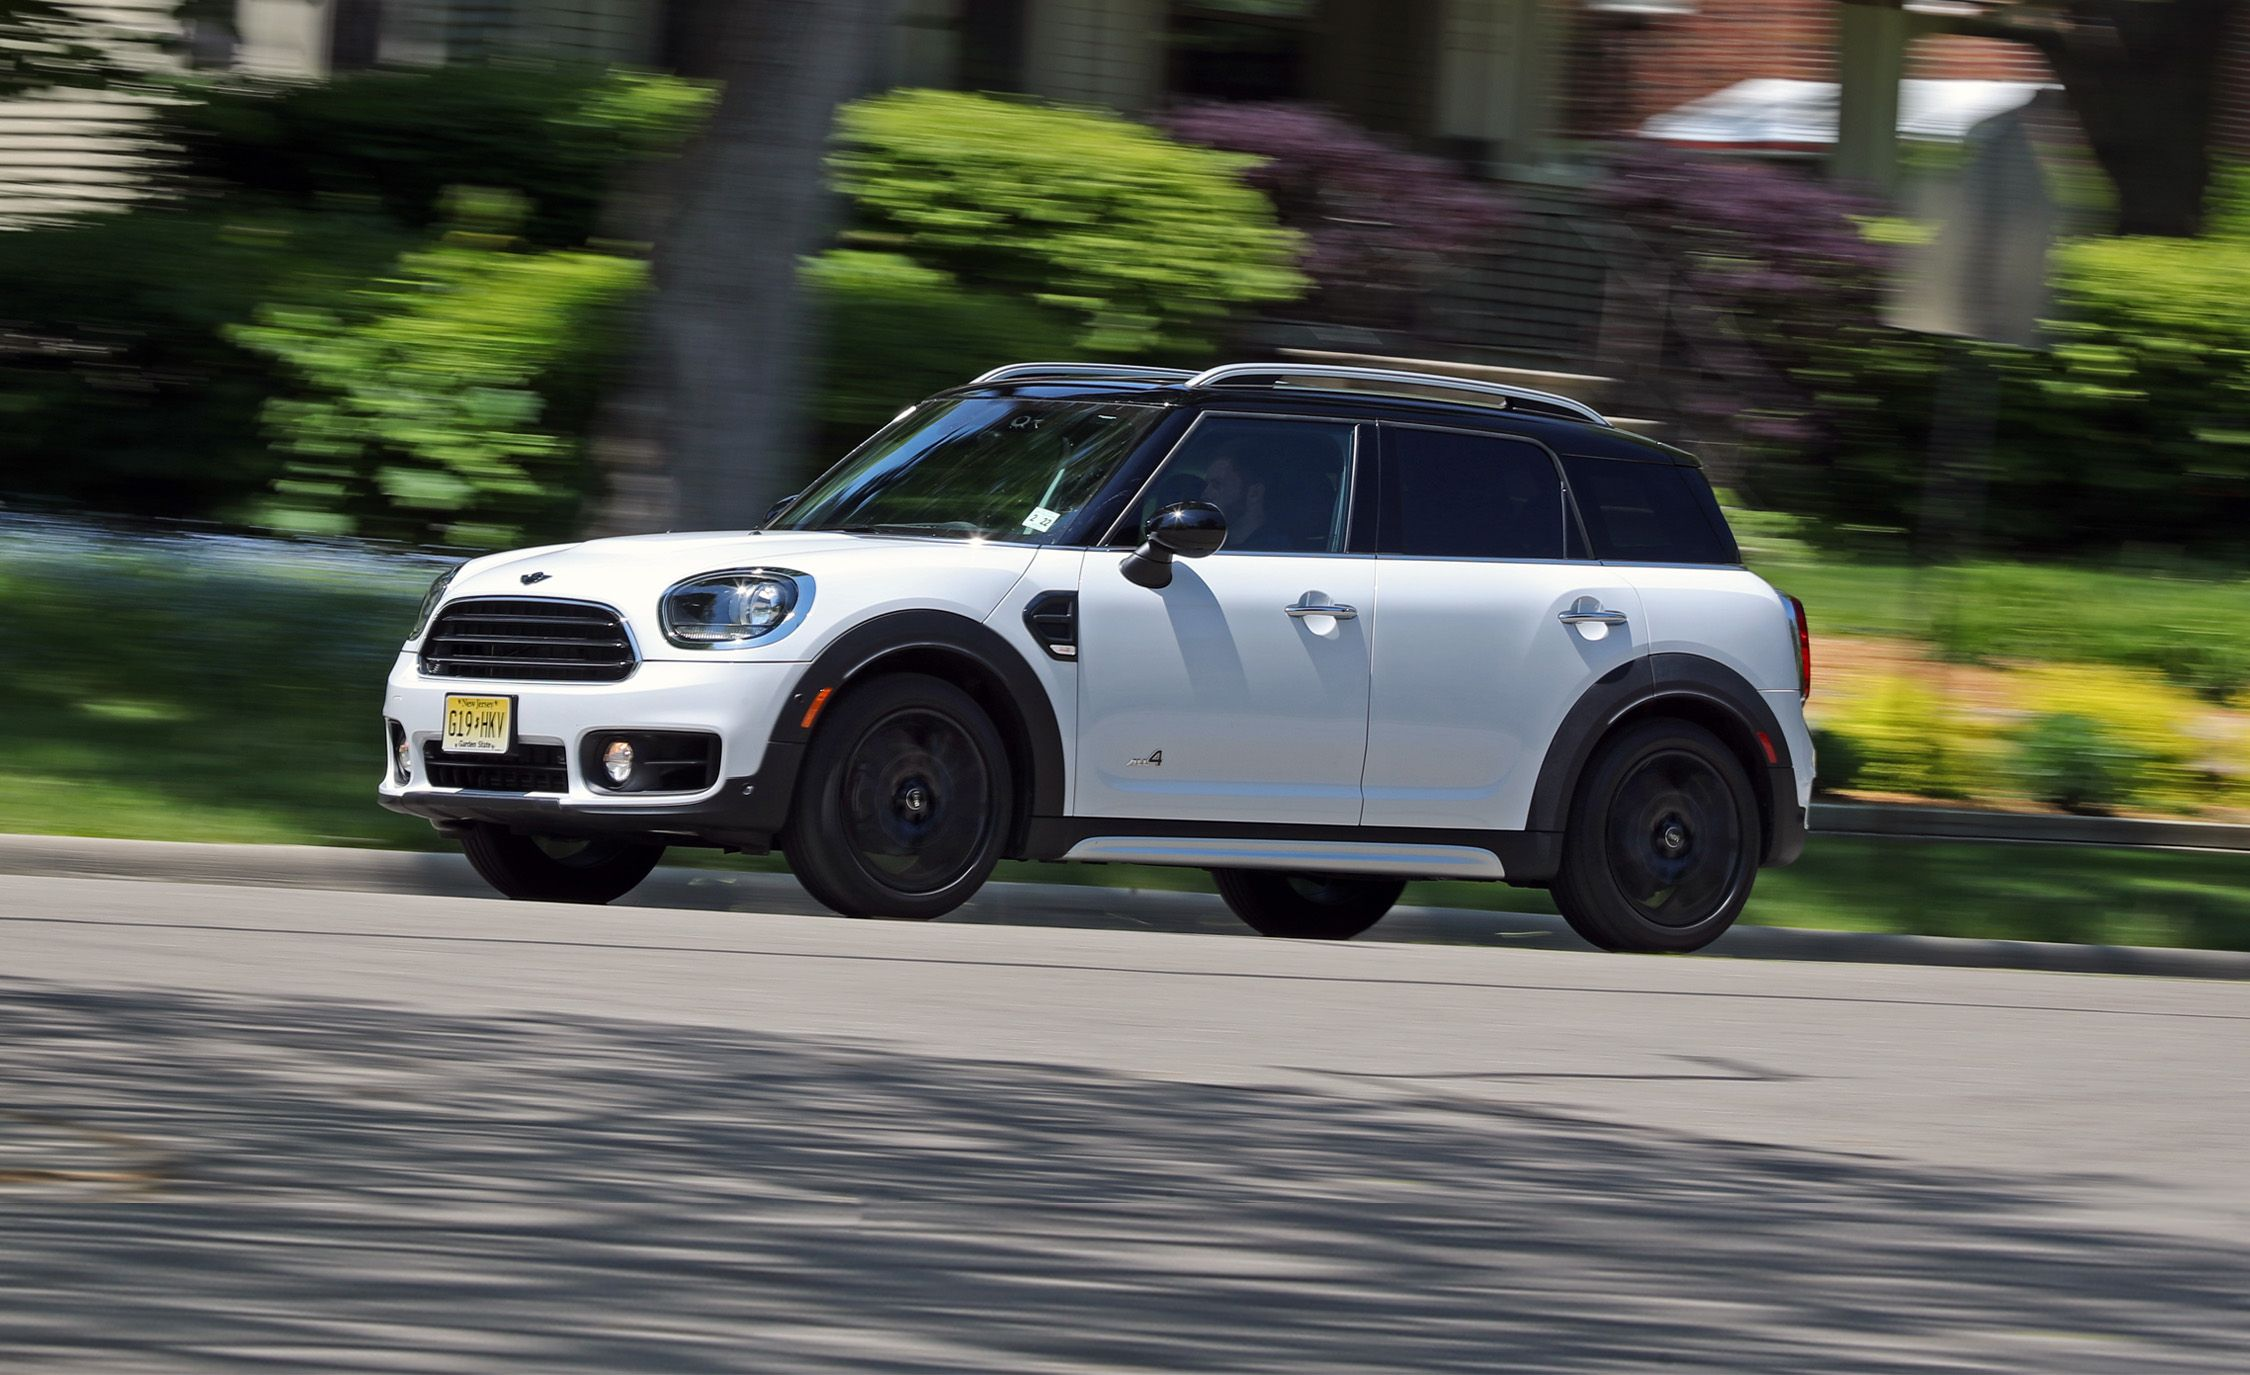 2017 mini cooper countryman all4 1 5t manual test review car and rh caranddriver com 2011 mini cooper countryman owner's manual mini cooper countryman manual transmission